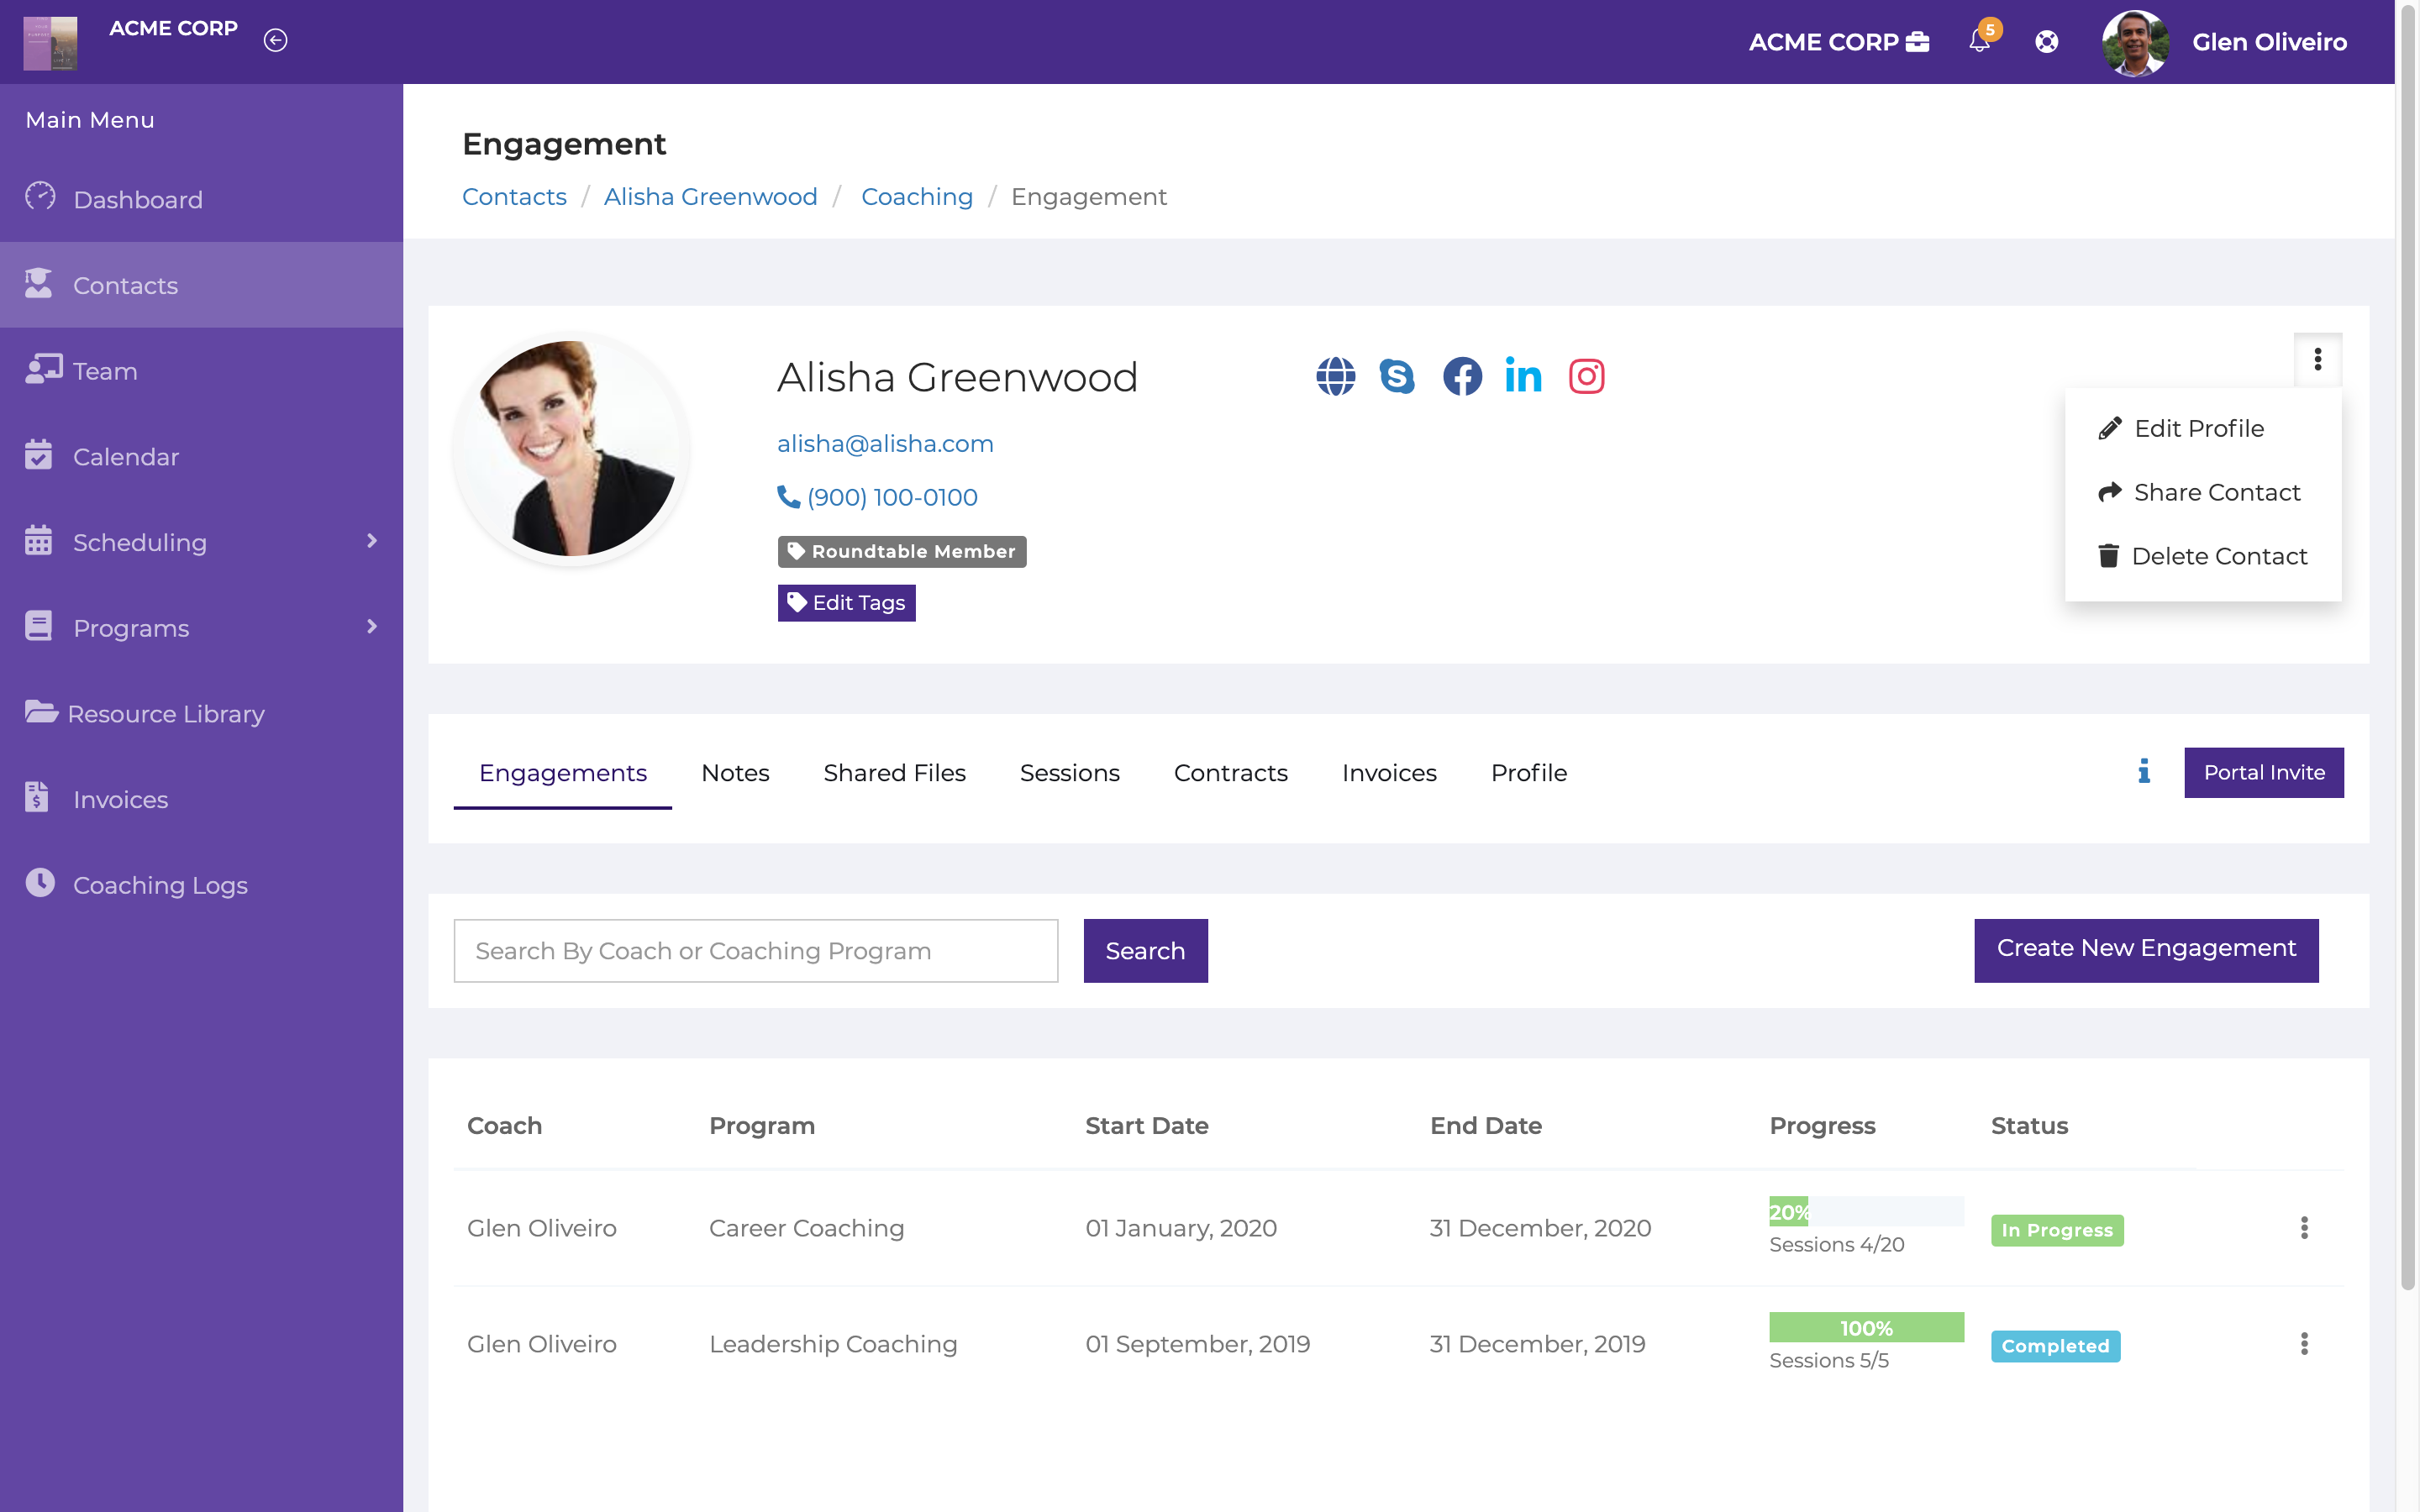 Client management. Manage engagements, notes, sessions, invoices and contracts, all in one place.